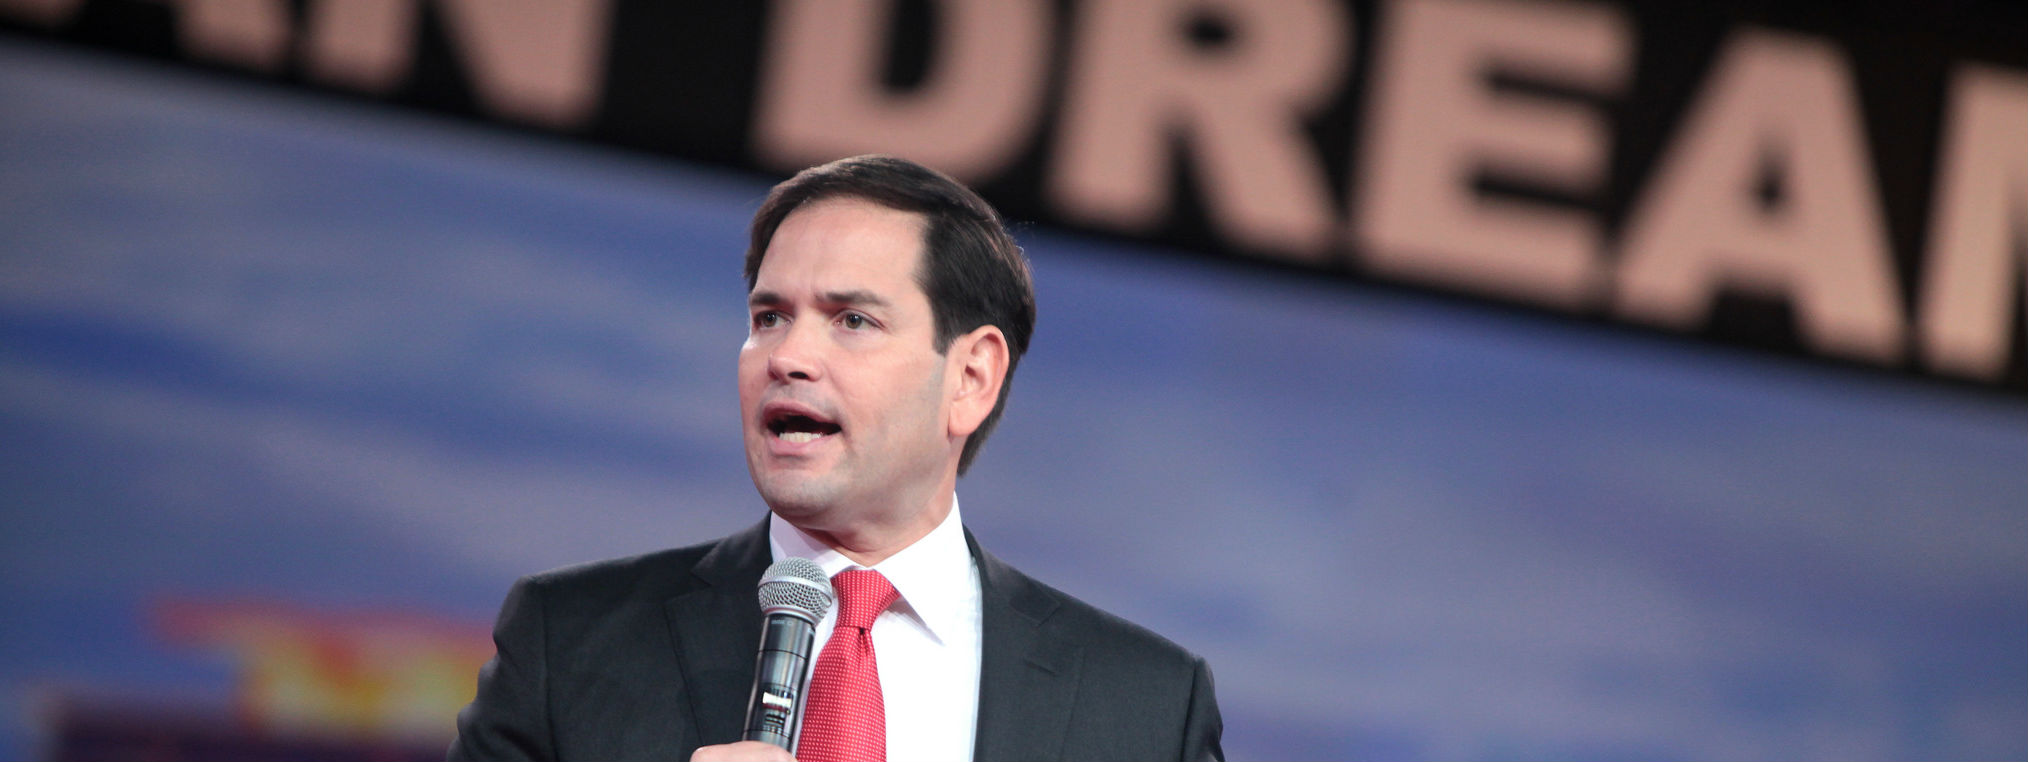 Rubio Passes Cruz and Trump in Simulated RCV Primary